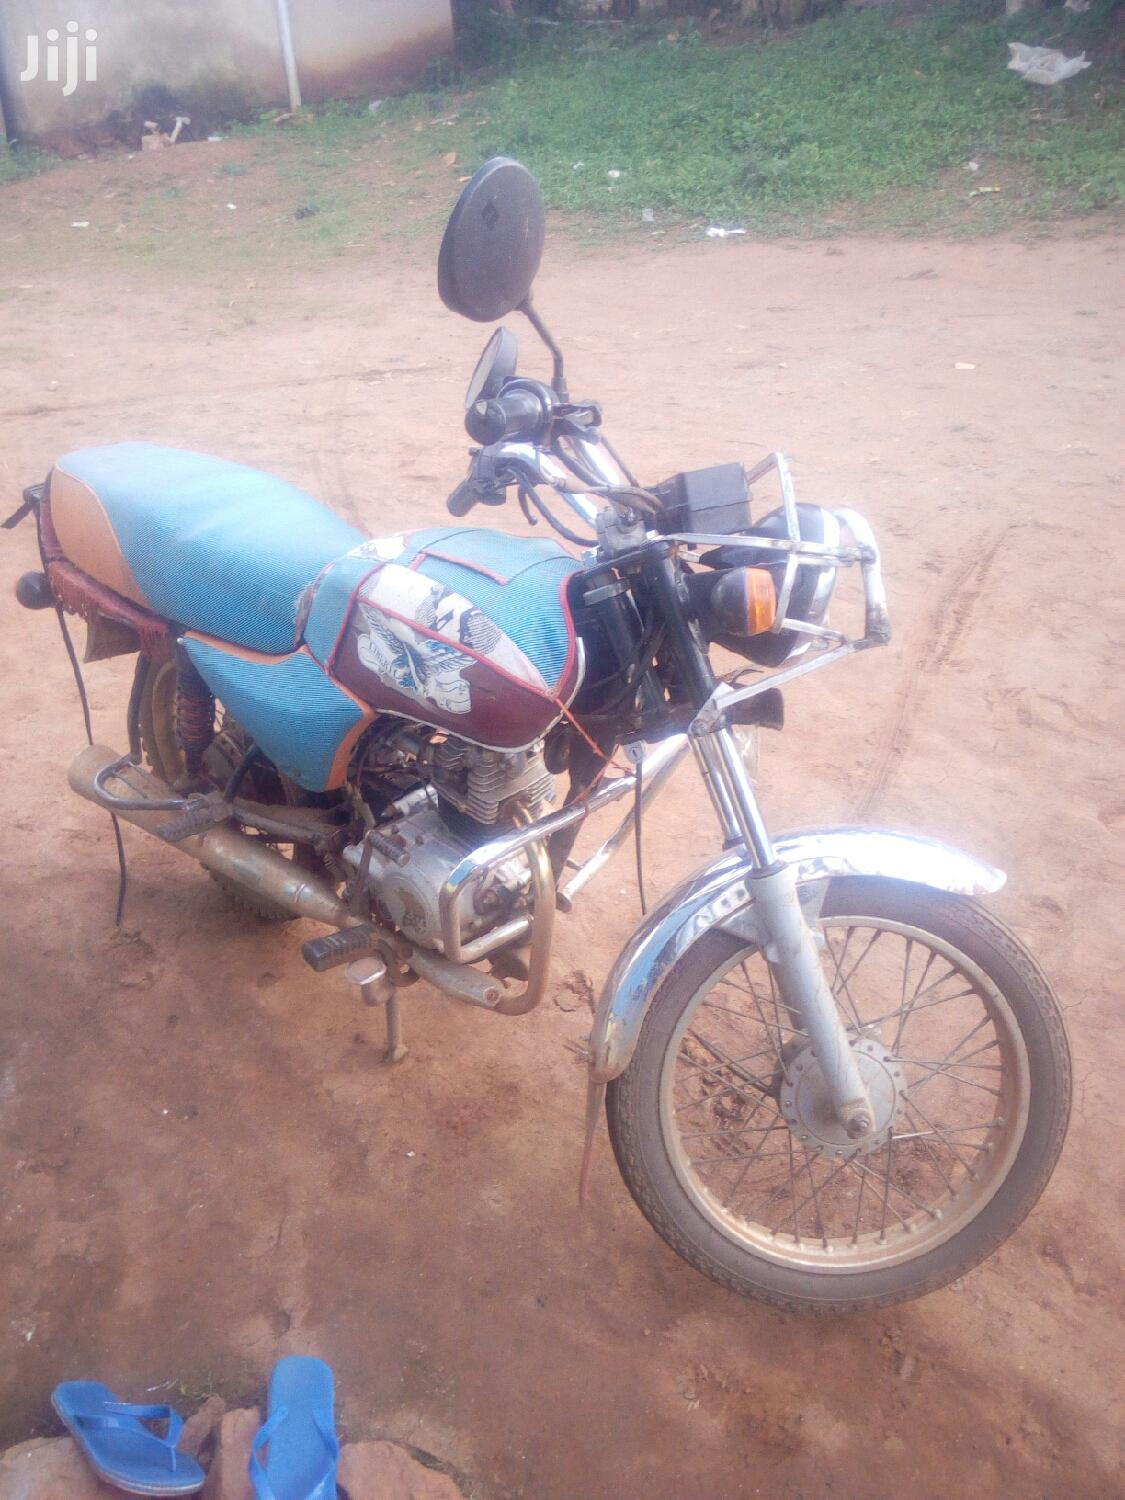 Archive: Motorcycle For Hire Needed